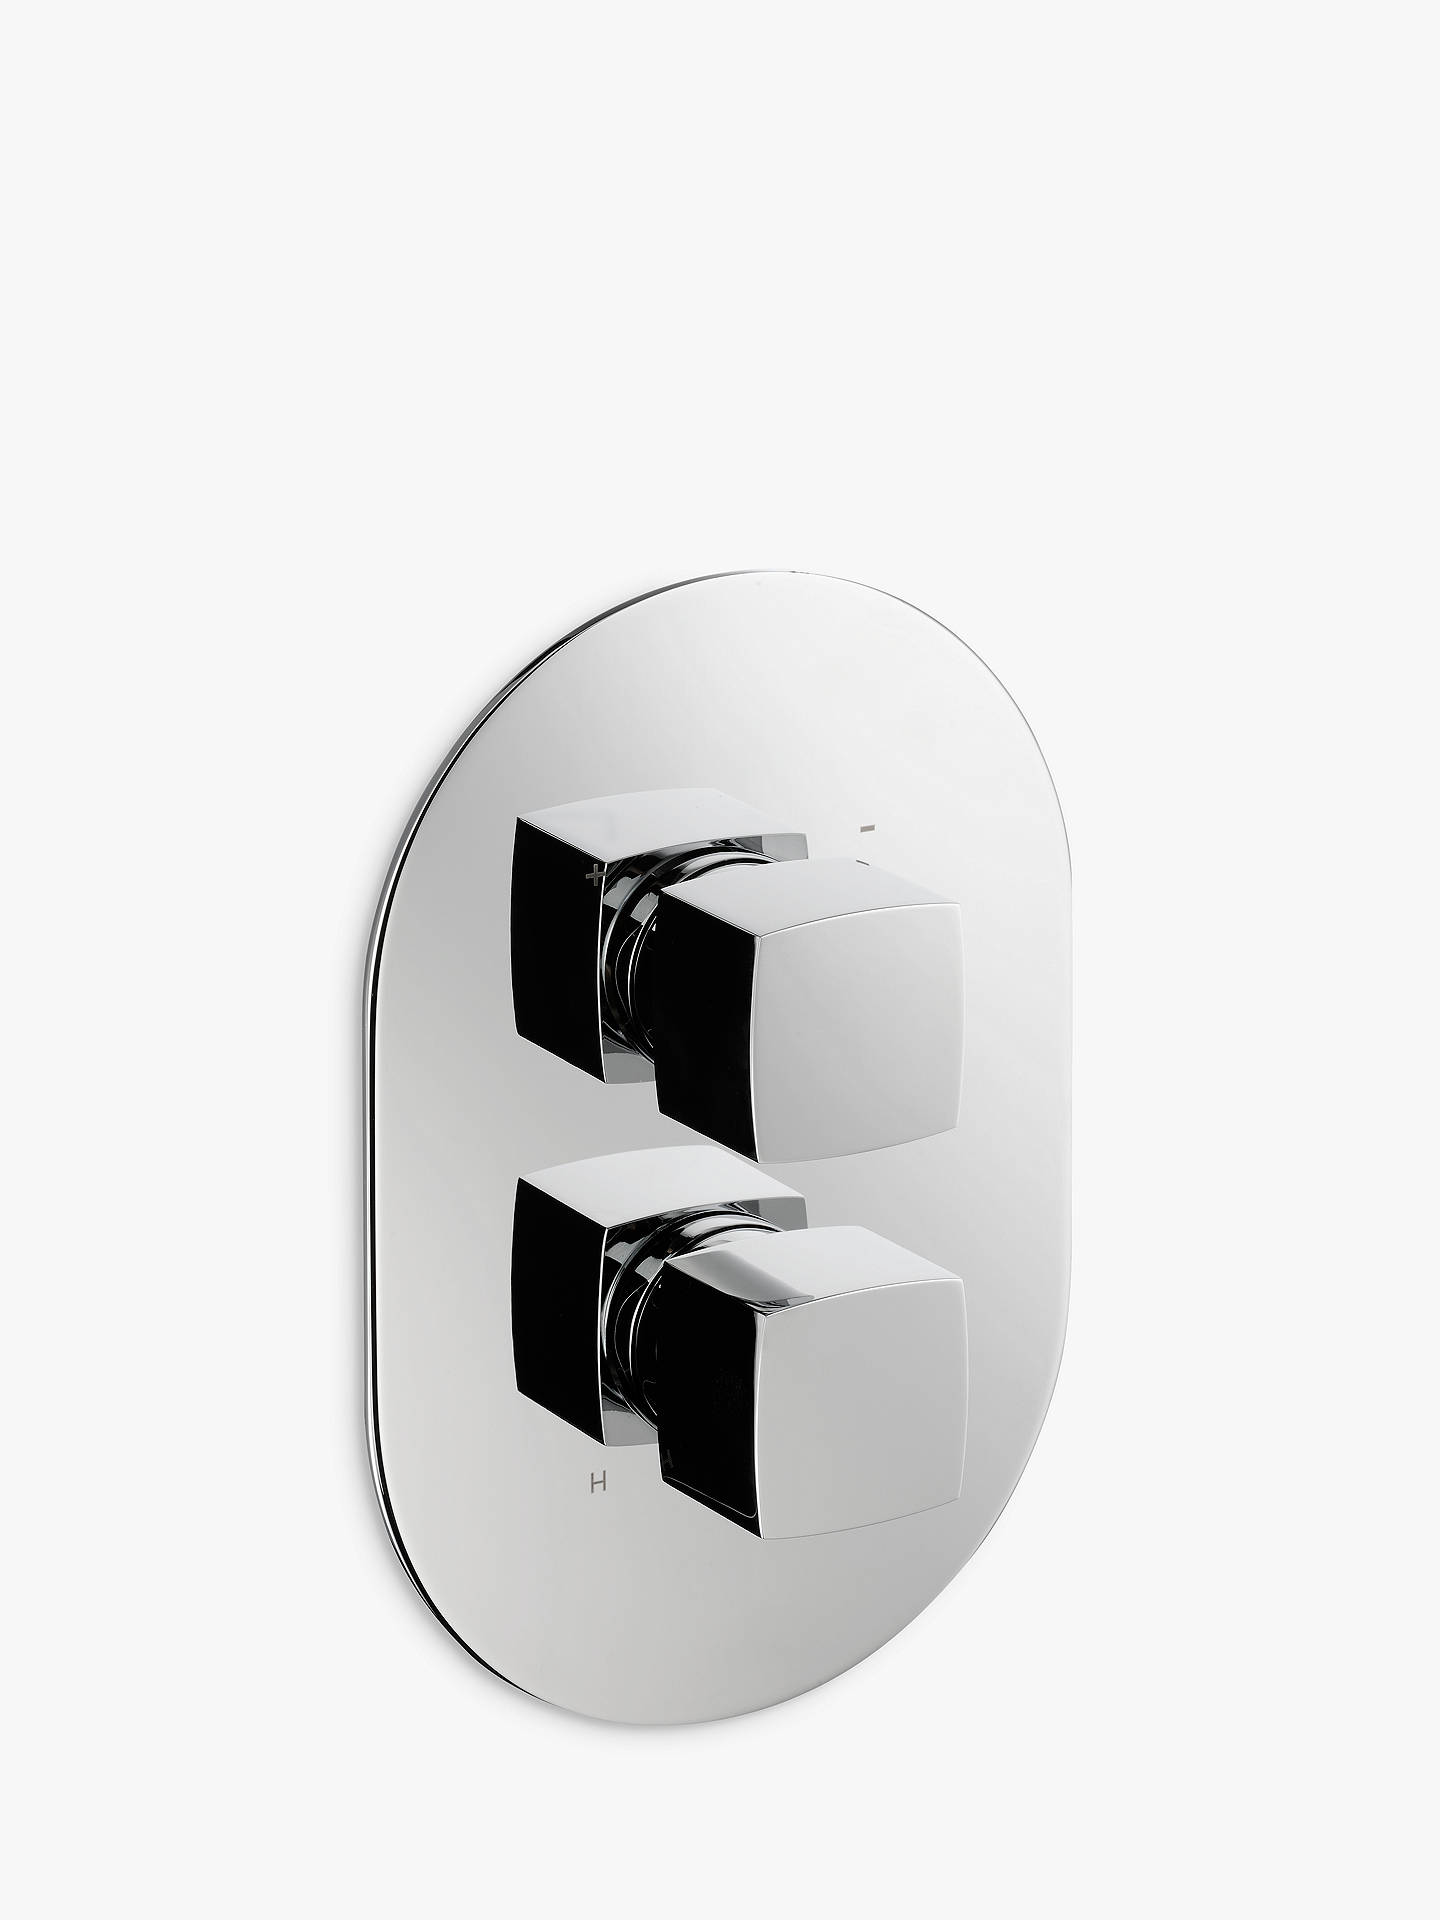 Buy John Lewis & Partners Eden Concealed Thermostatic Shower Valve Bathroom Taps (1 Exit), Chrome Online at johnlewis.com